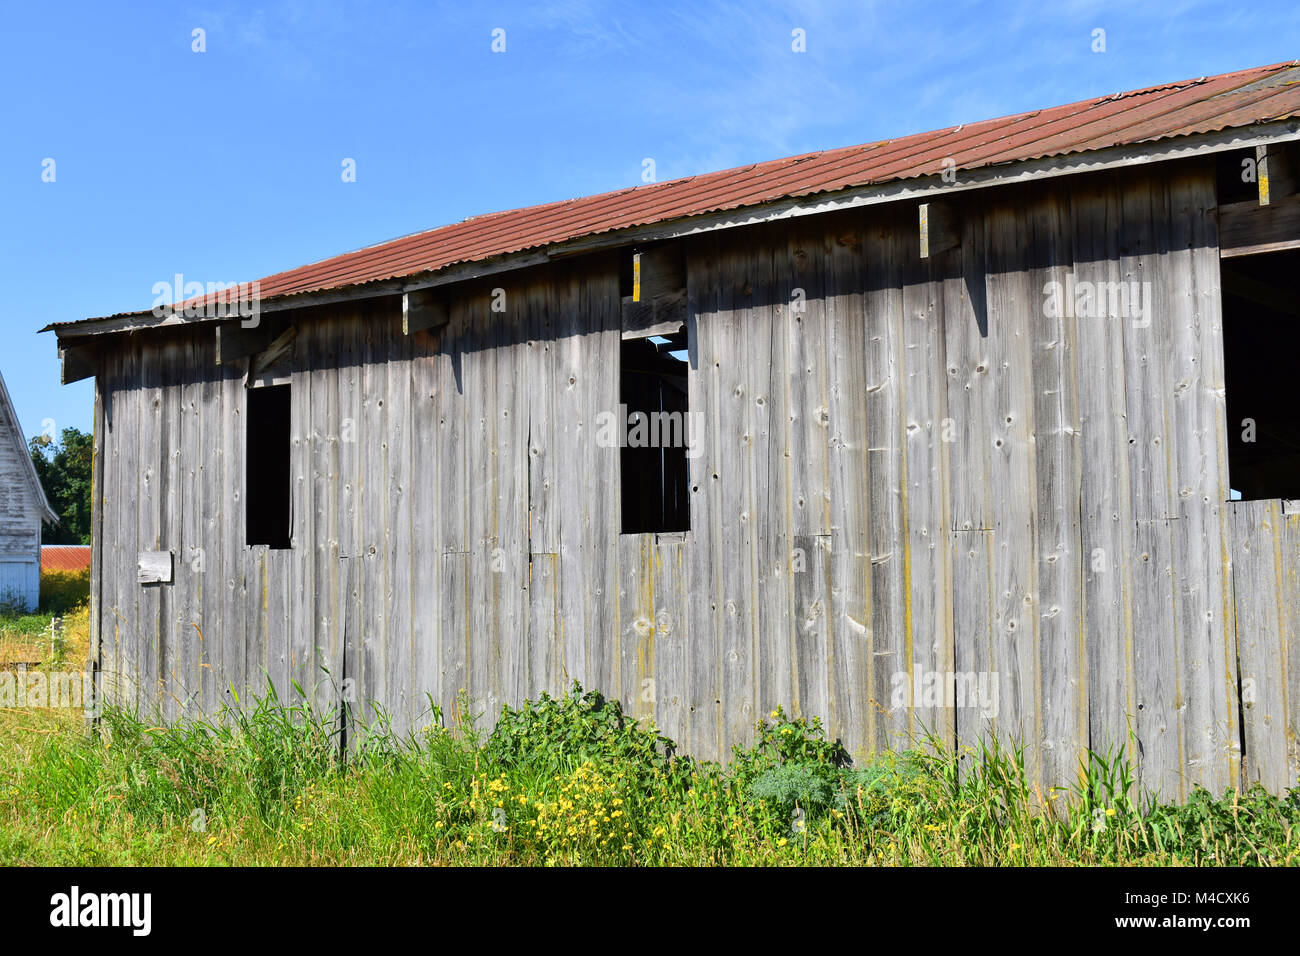 Superbe Weathered And Worn Old Barn Storage Facility At A Rural Countryside Farm In  The Pacific Northwest Countryside Of Bellingham, Washington, USA.